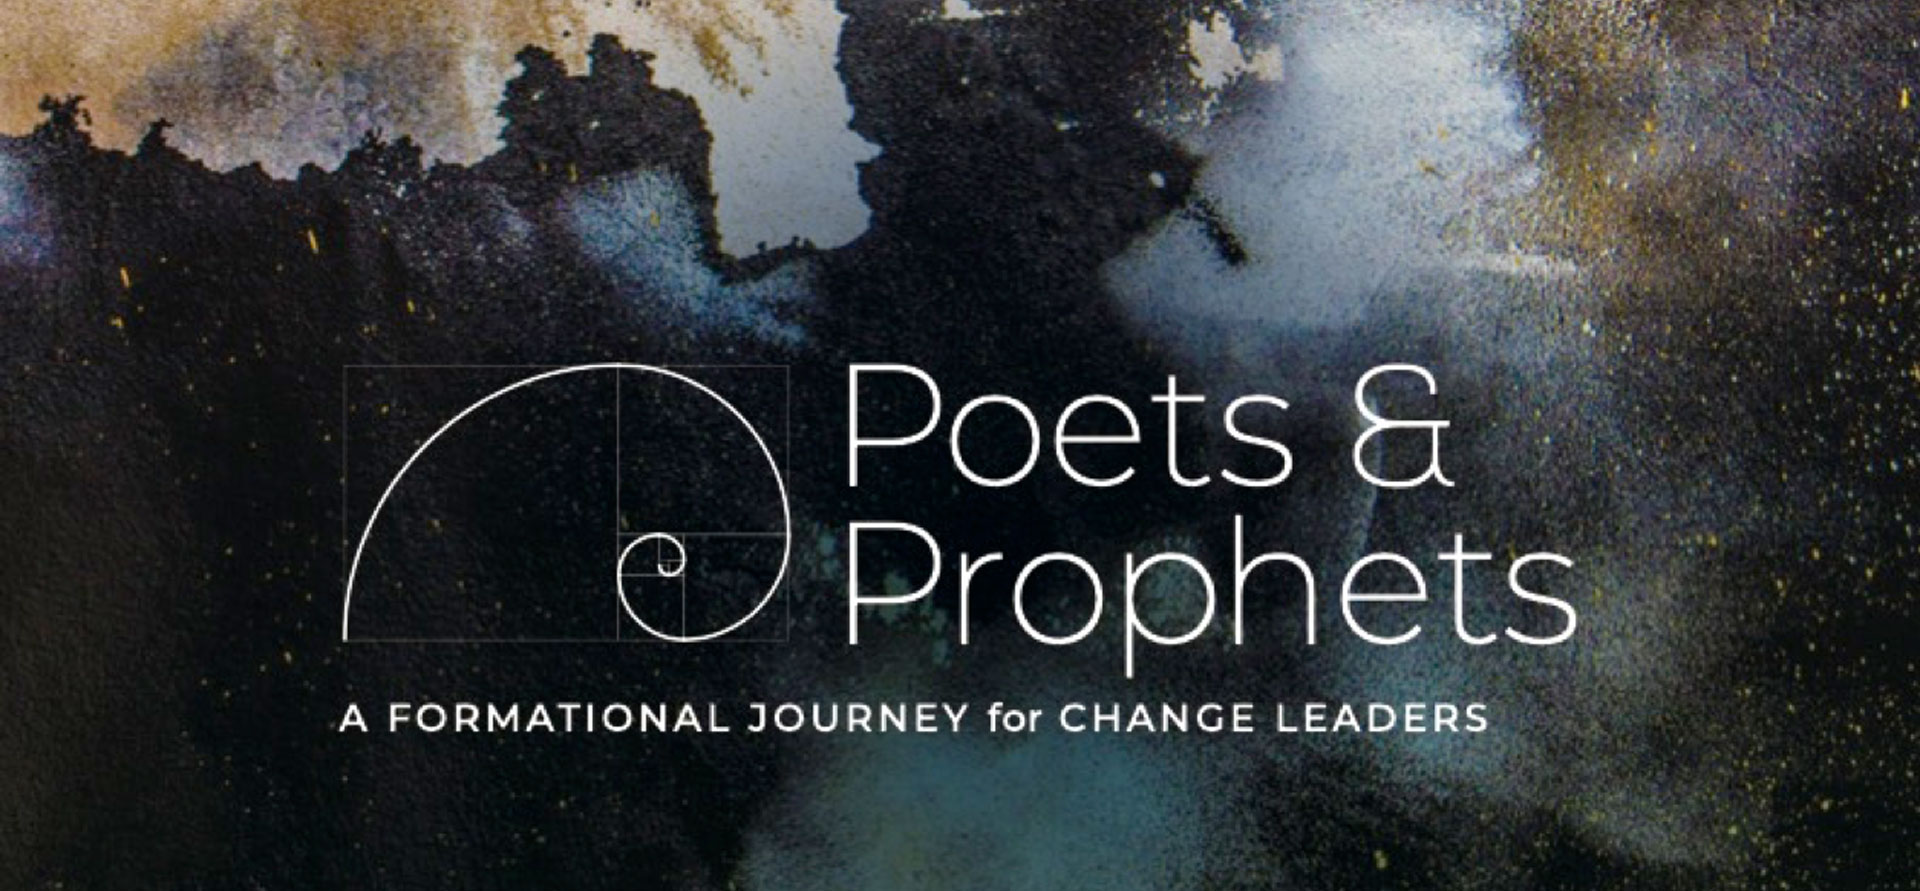 Poets and Prophets